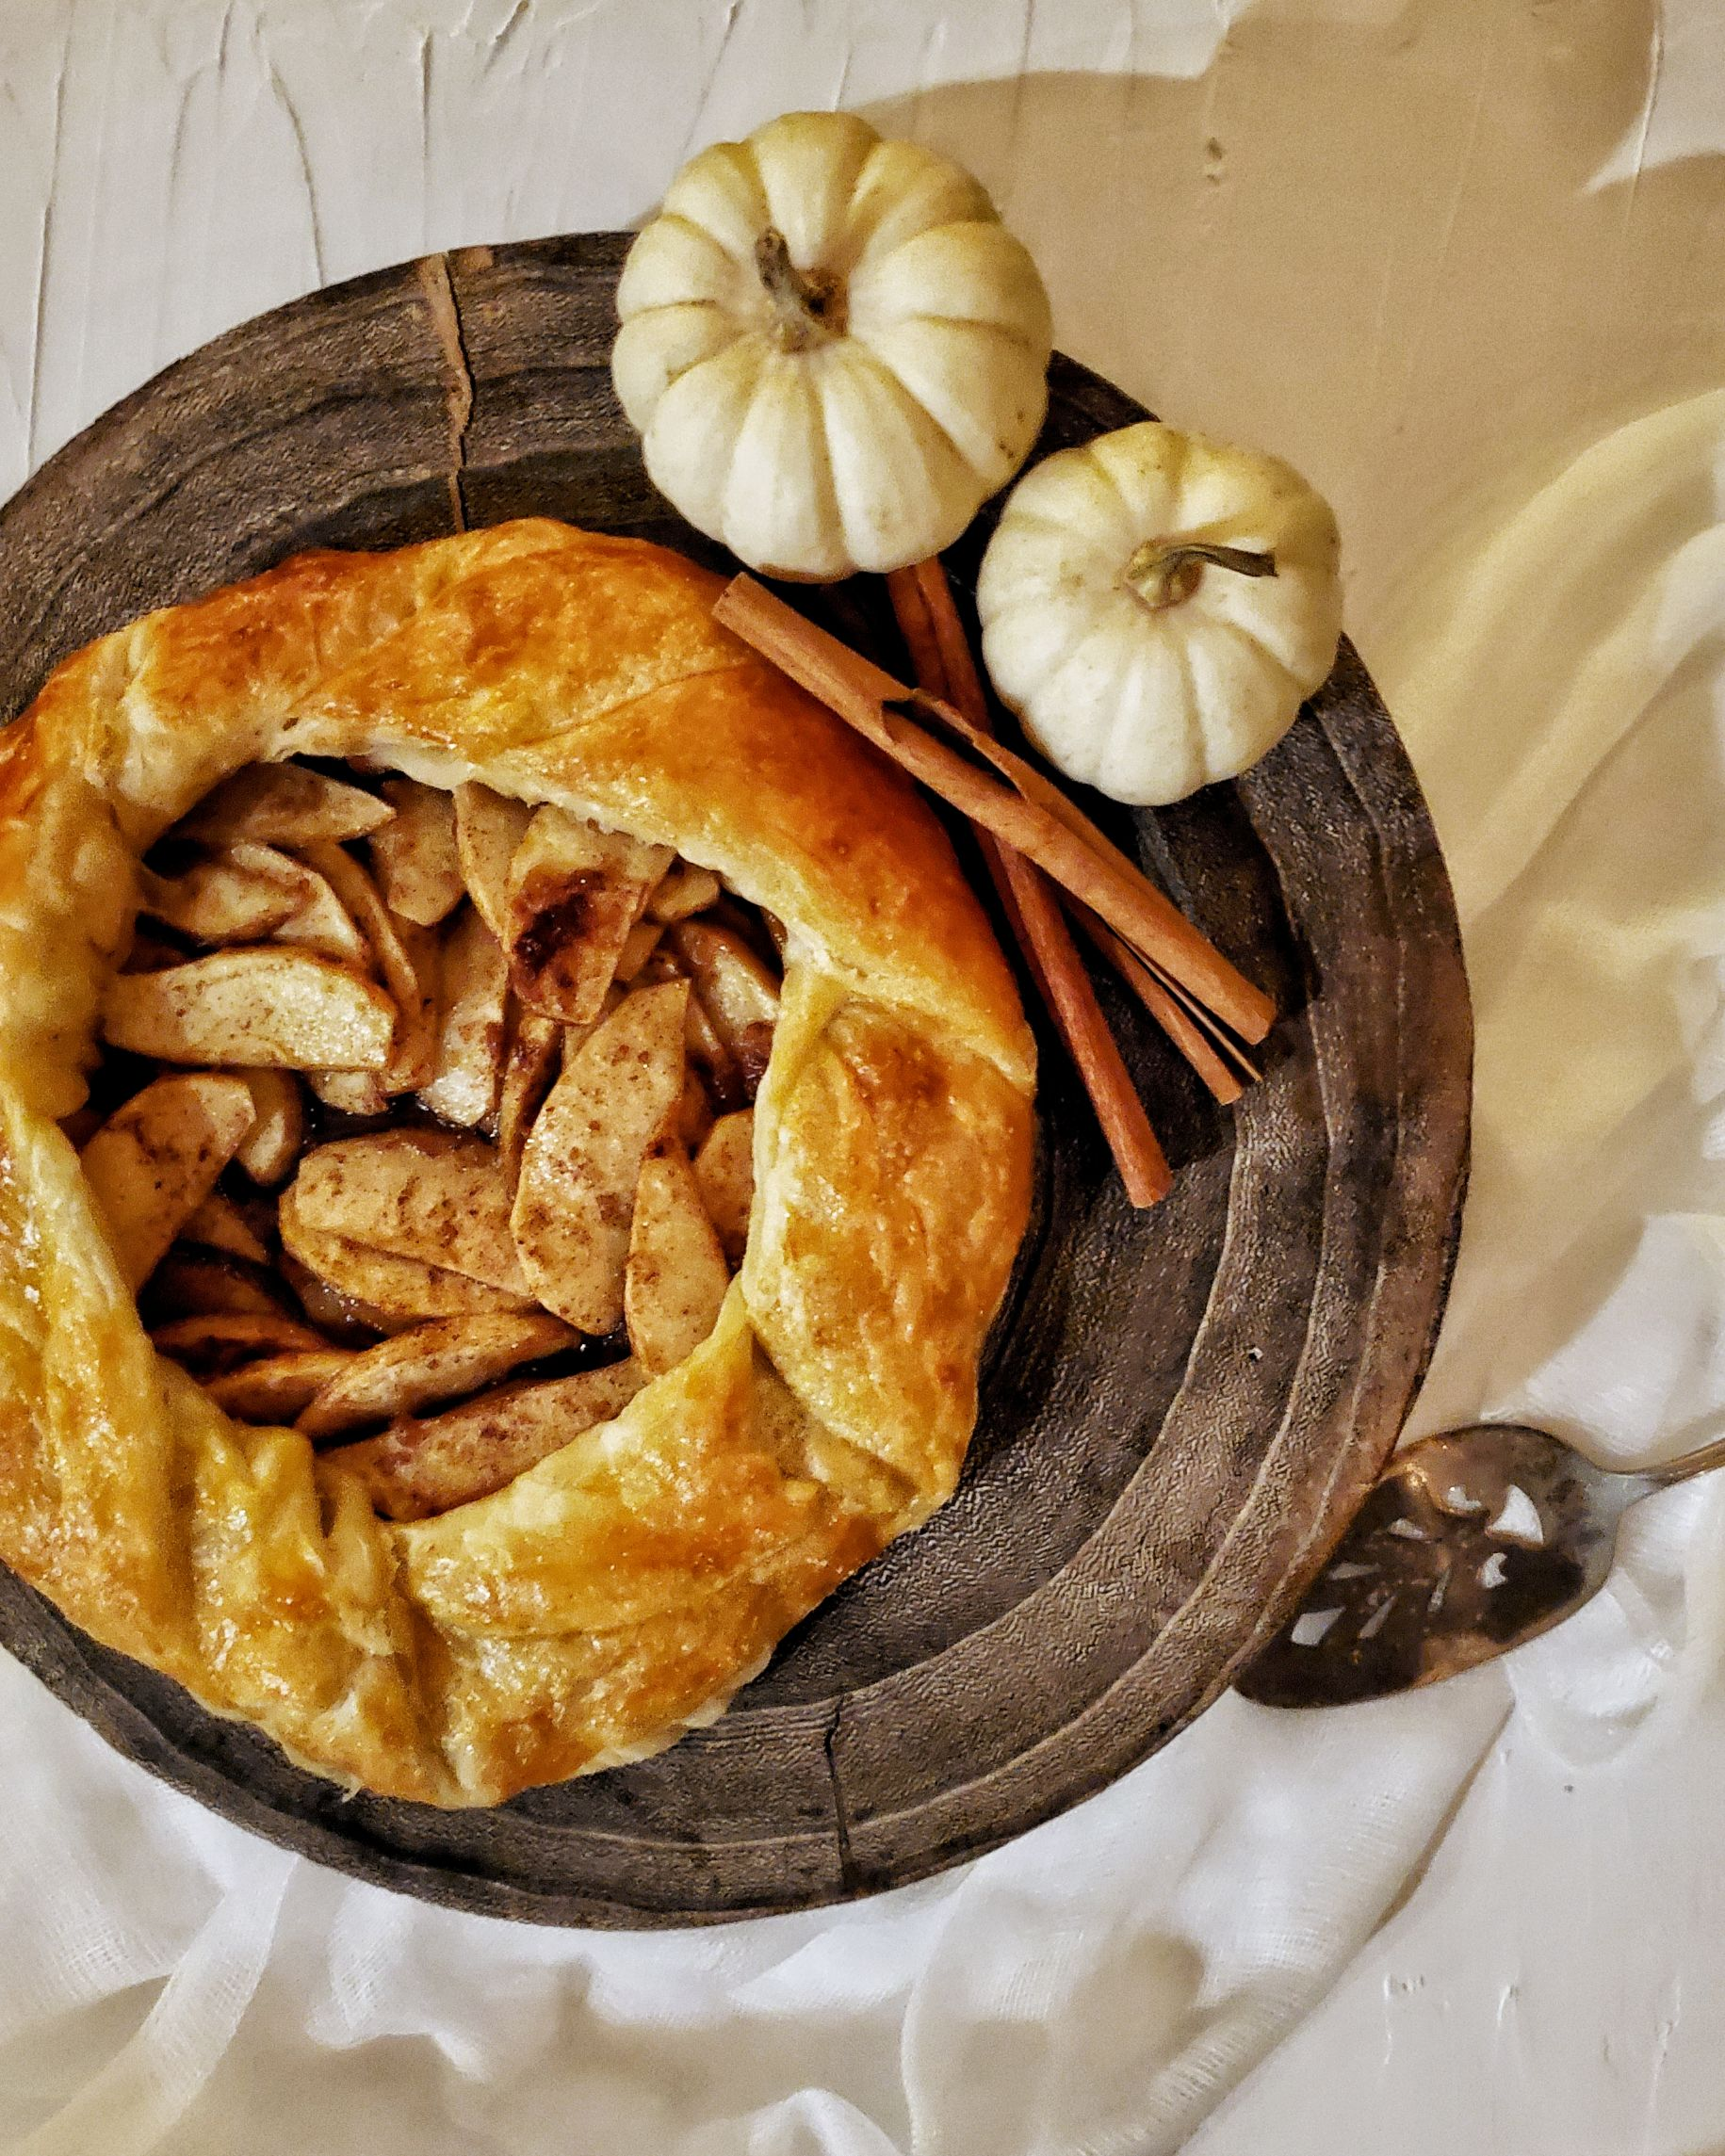 Apple galette on decorative cake stand